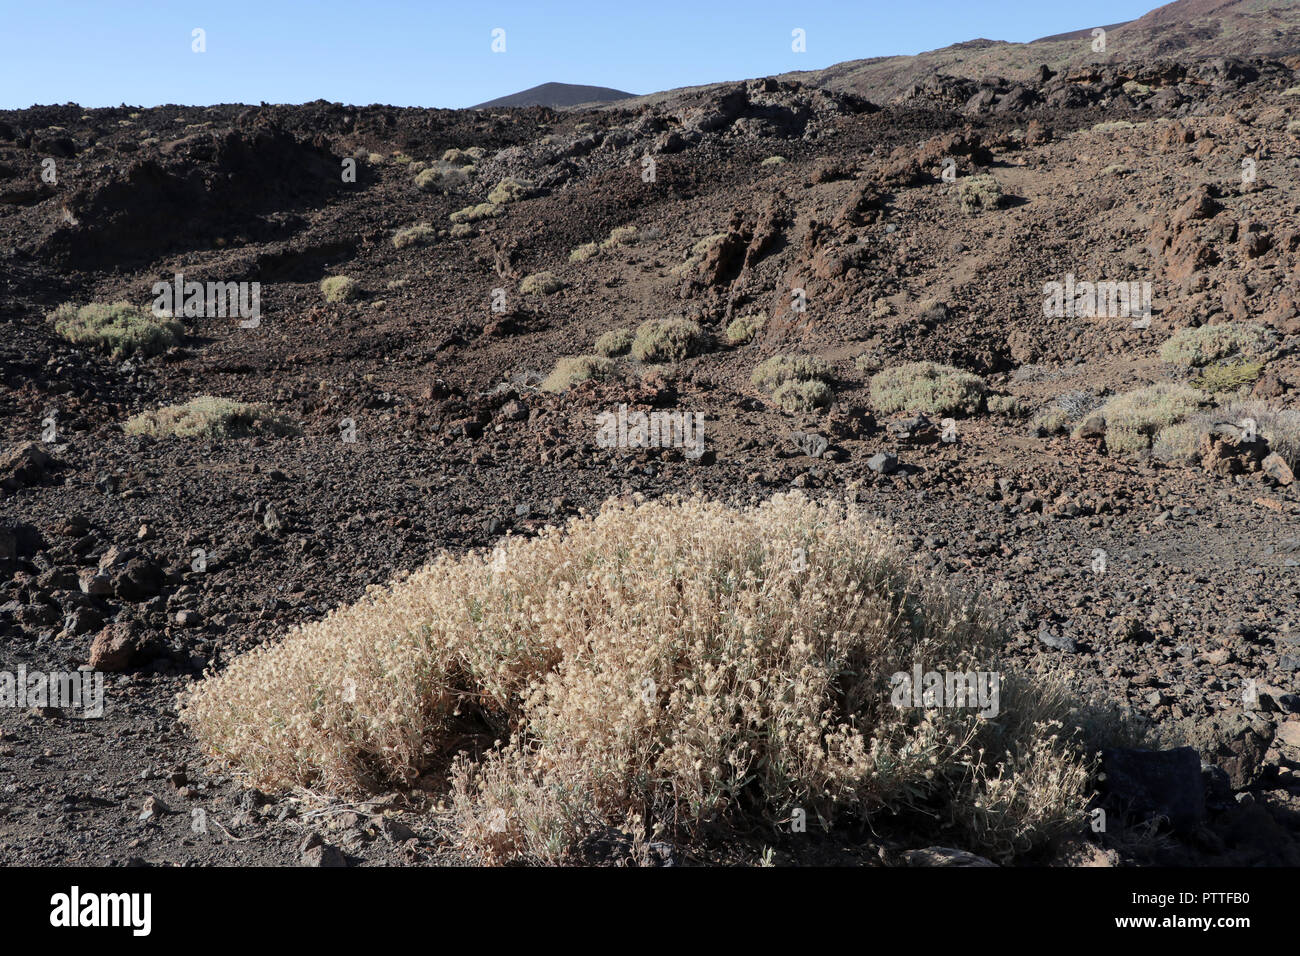 Chirche, Spanien. 18th Sep, 2018. Bald lunar landscape with sparse vegetation on the tour to the Pico del Teide on the Canary Island of Tenerife on 18.09.2018. The Pico del Teide (also Teyde) is with 3718 m the highest elevation on the Canary Island of Tenerife and the highest mountain in Spain. It belongs to the municipality of La Orotava. In 2007, the territory of the National Park was included in the World Heritage List by UNESCO. | usage worldwide Credit: dpa/Alamy Live News - Stock Image